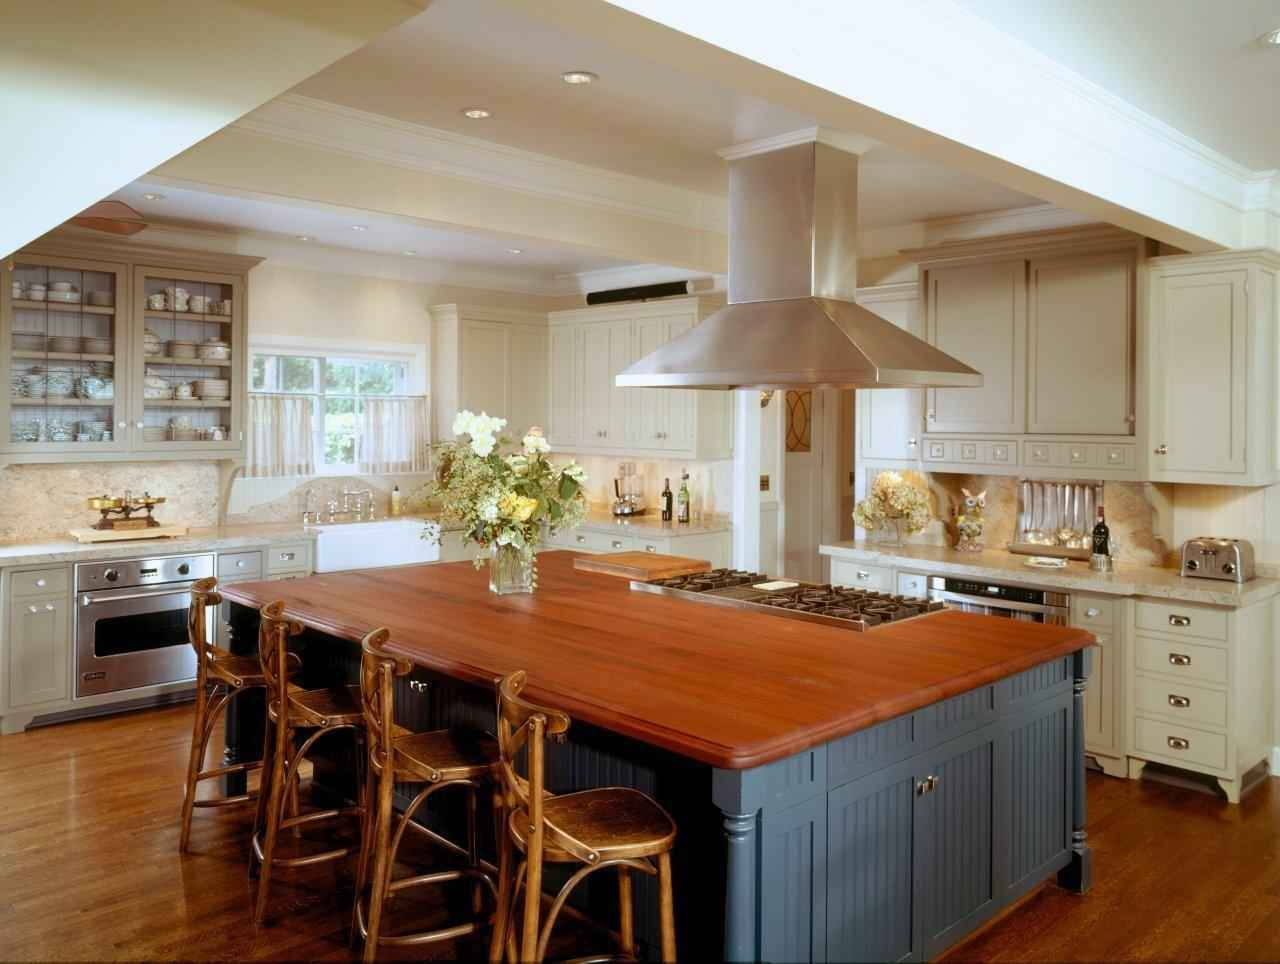 Inexpensive countertop ideas for your kitchens for Kitchen cabinets and countertops ideas